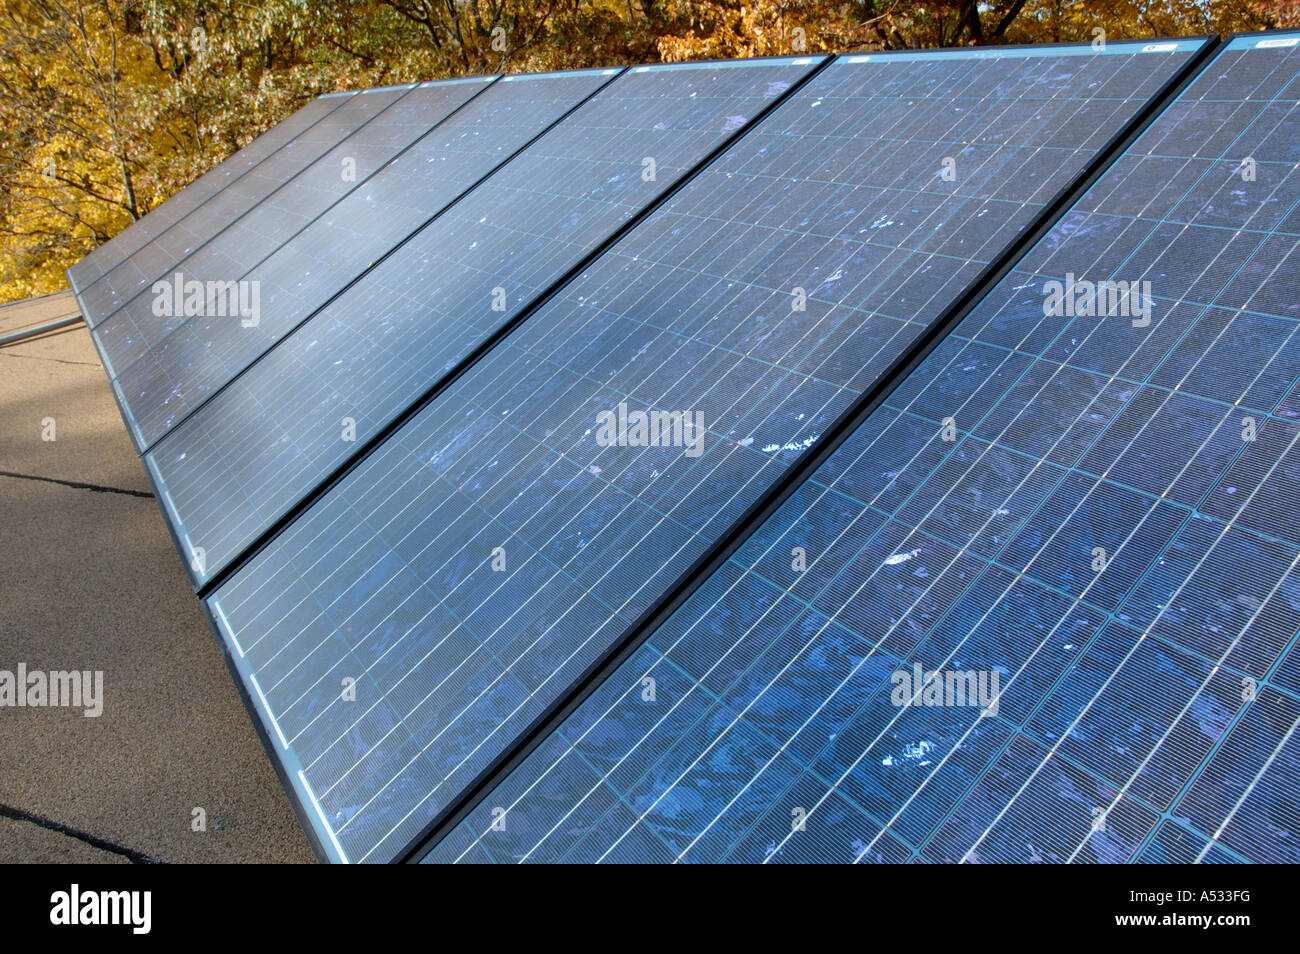 Array of photovoltaic solar power energy panels on the roof of a home - Stock Image